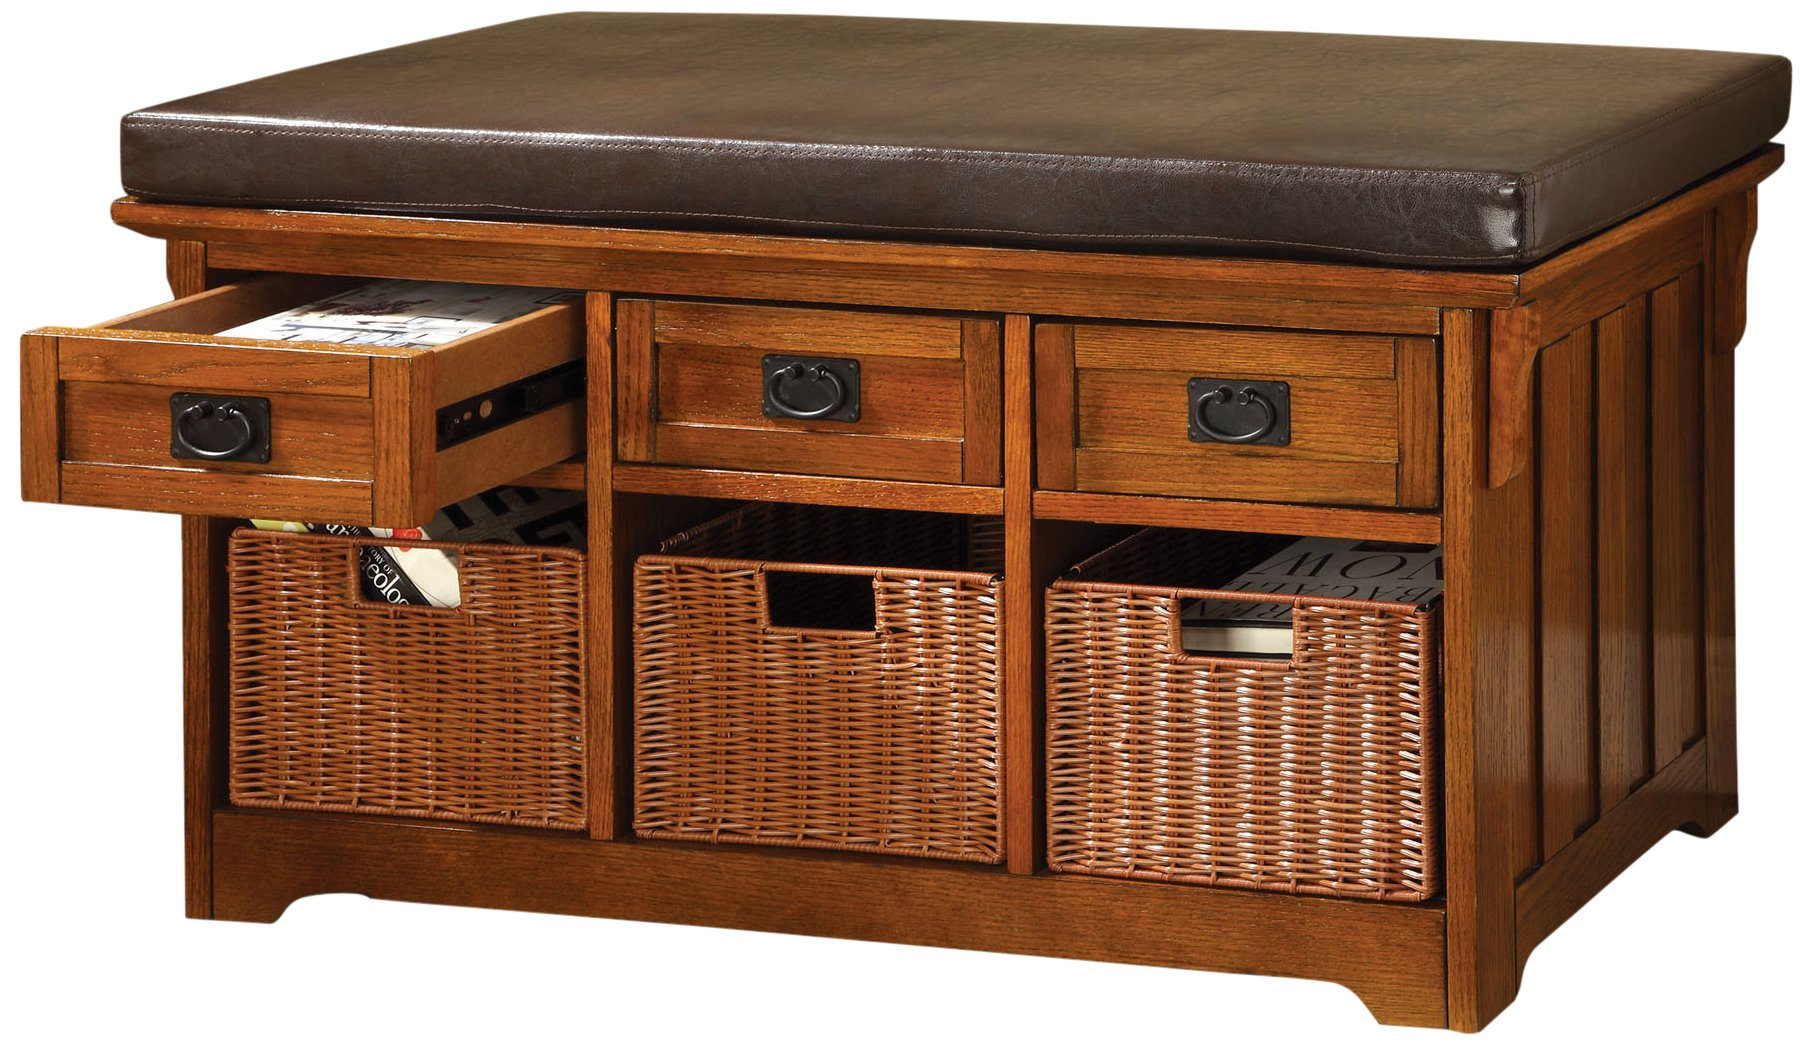 Furniture of America Victoria 42-Inch Wide Storage Entryway Bench with Baskets, Antique Oak